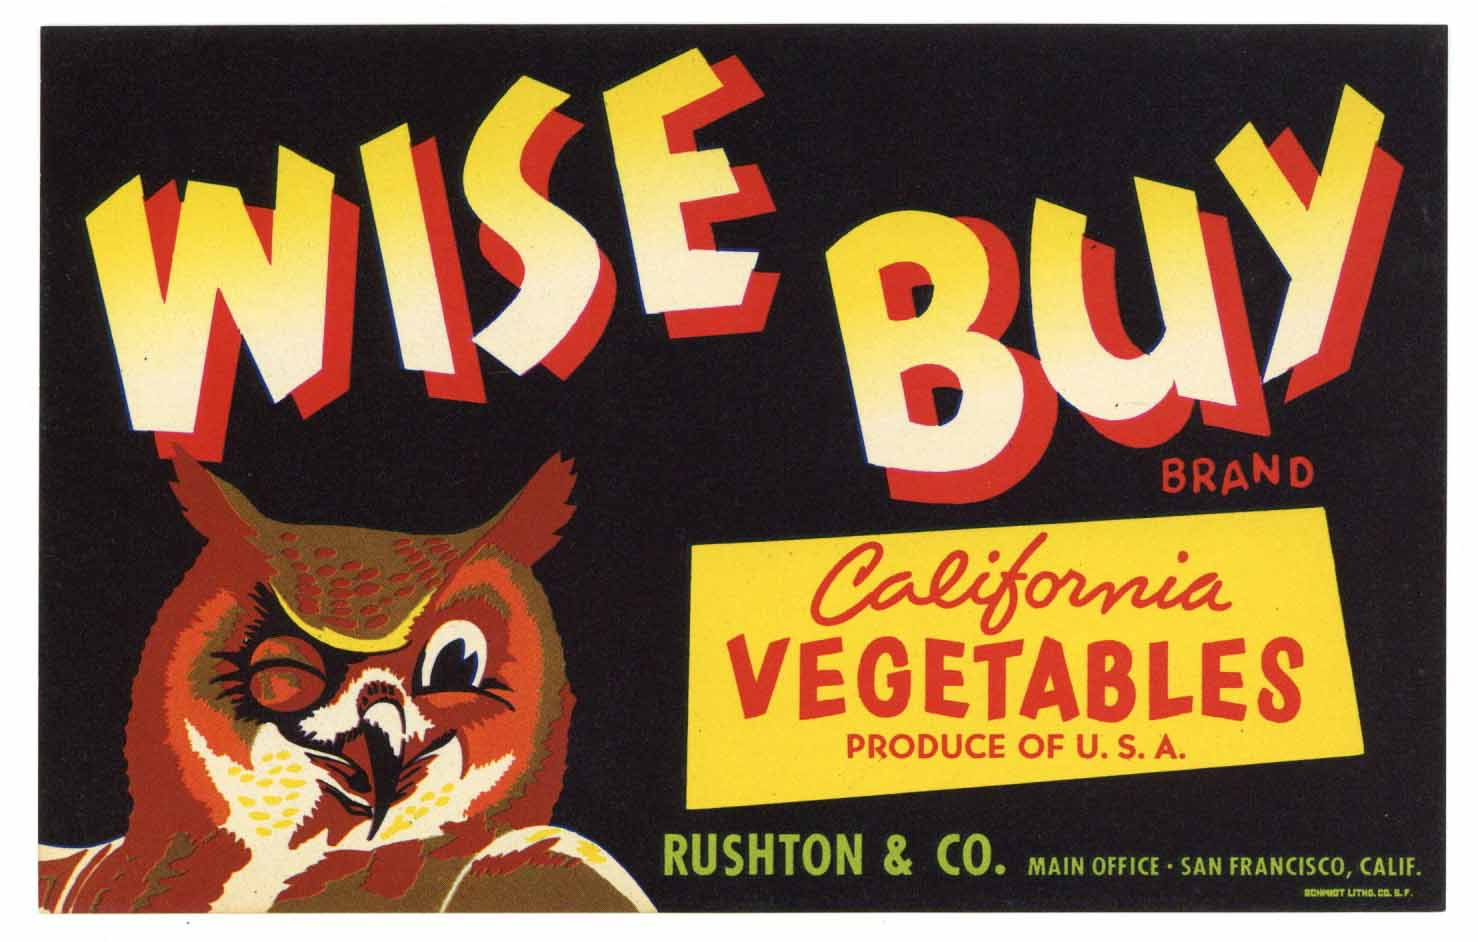 Wise Buy Brand Vintage Vegetable Crate Label